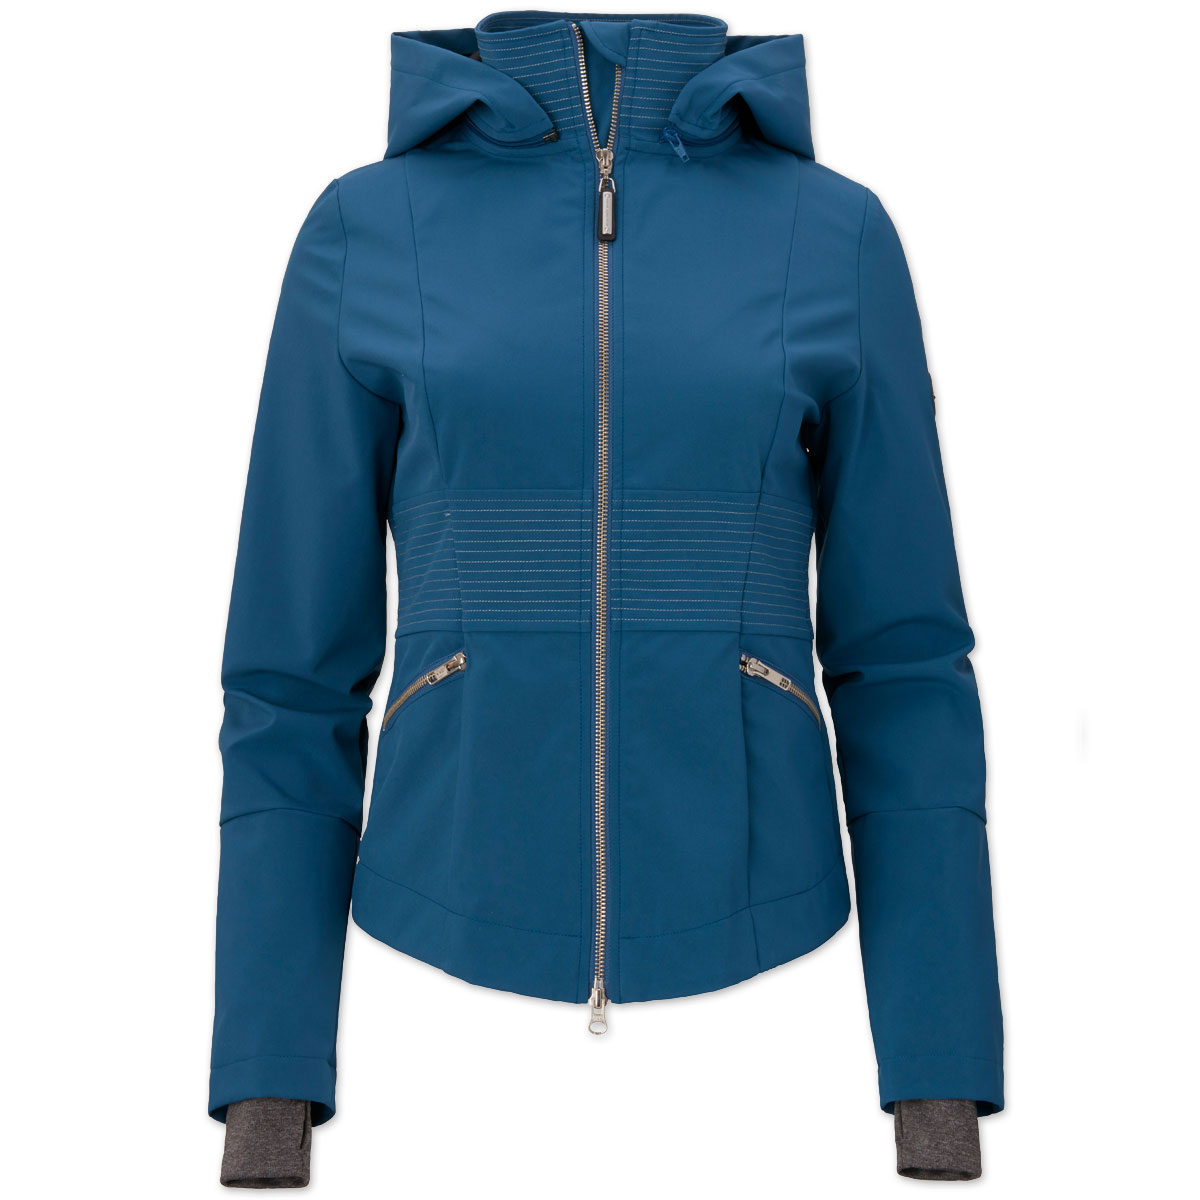 Asmar Rider Jacket- Special Edition - Clearance!